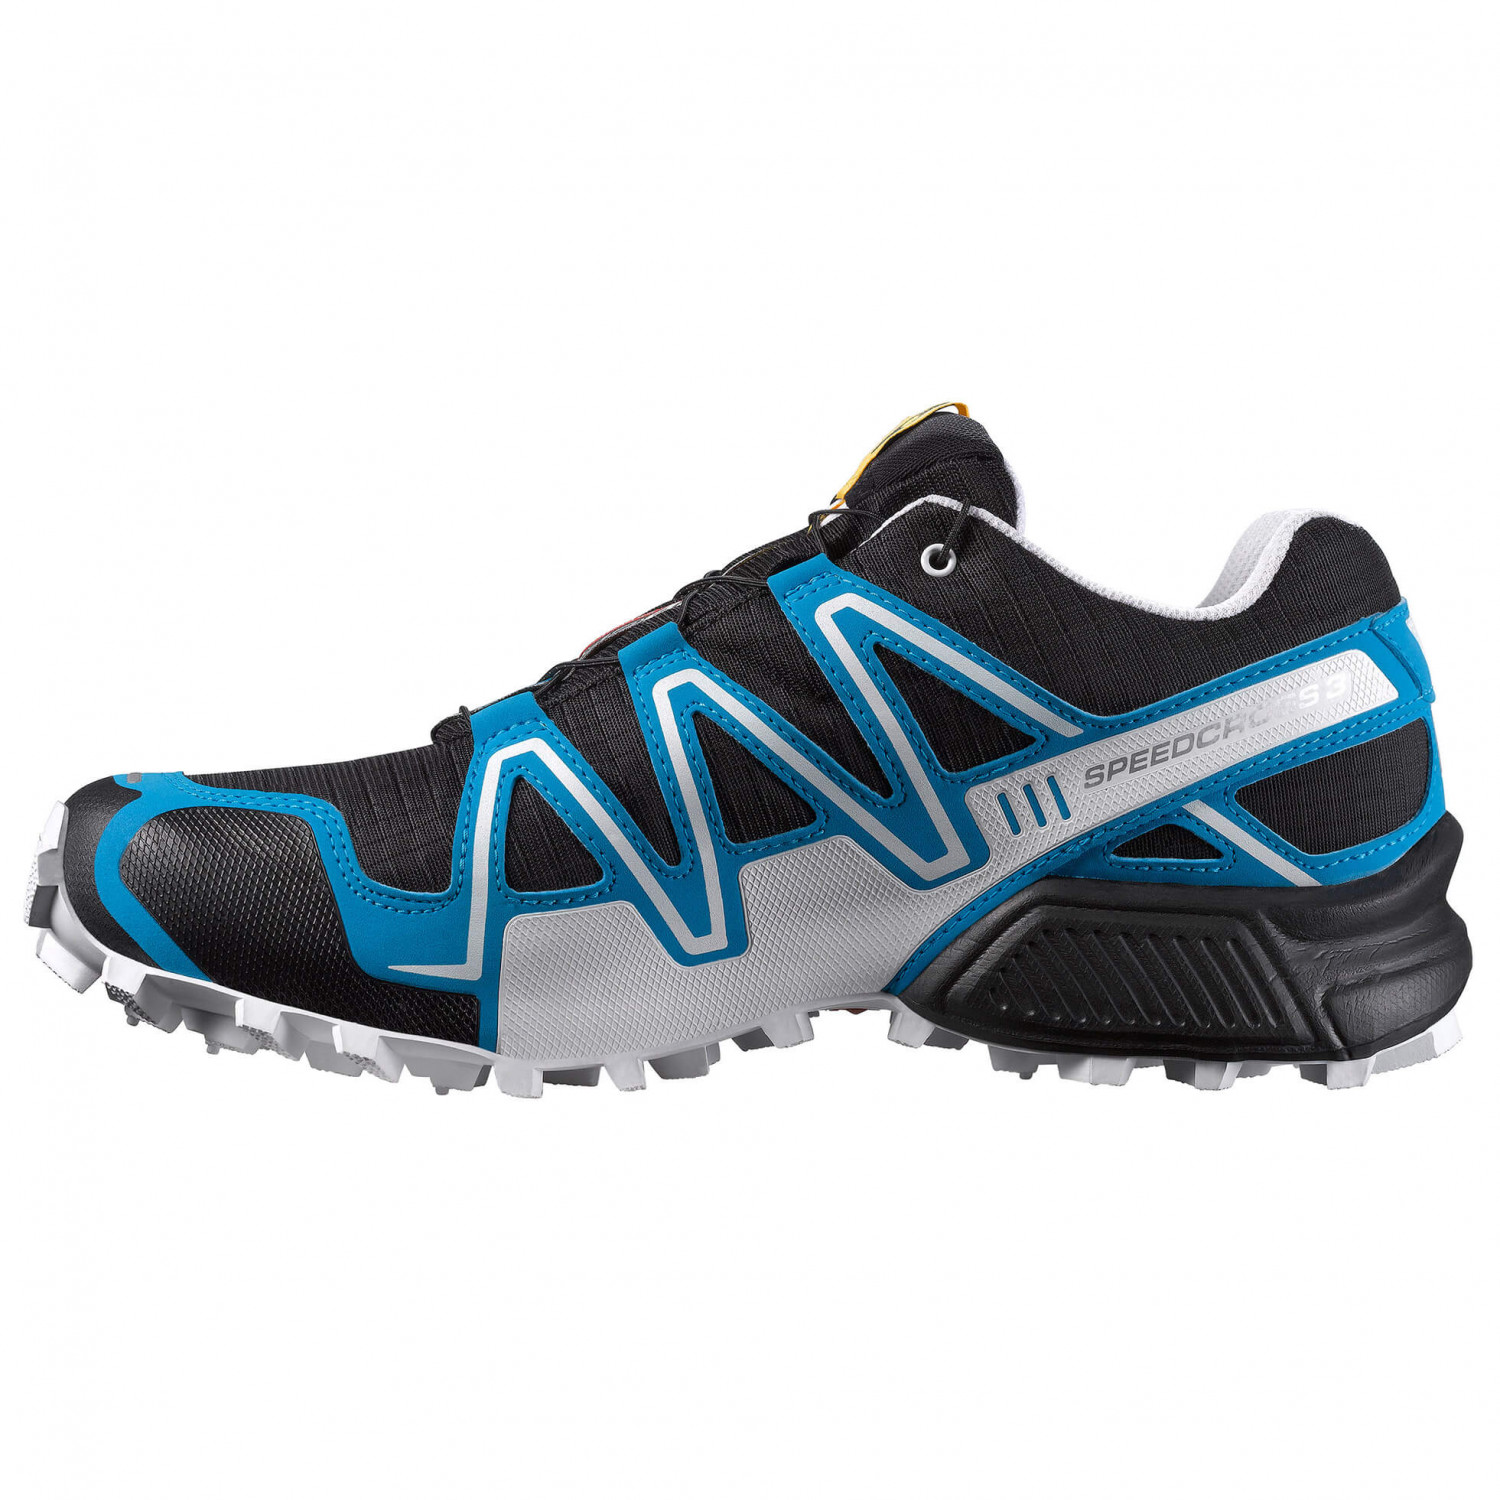 salomon speedcross 3 gtx trail running shoes men 39 s buy online. Black Bedroom Furniture Sets. Home Design Ideas